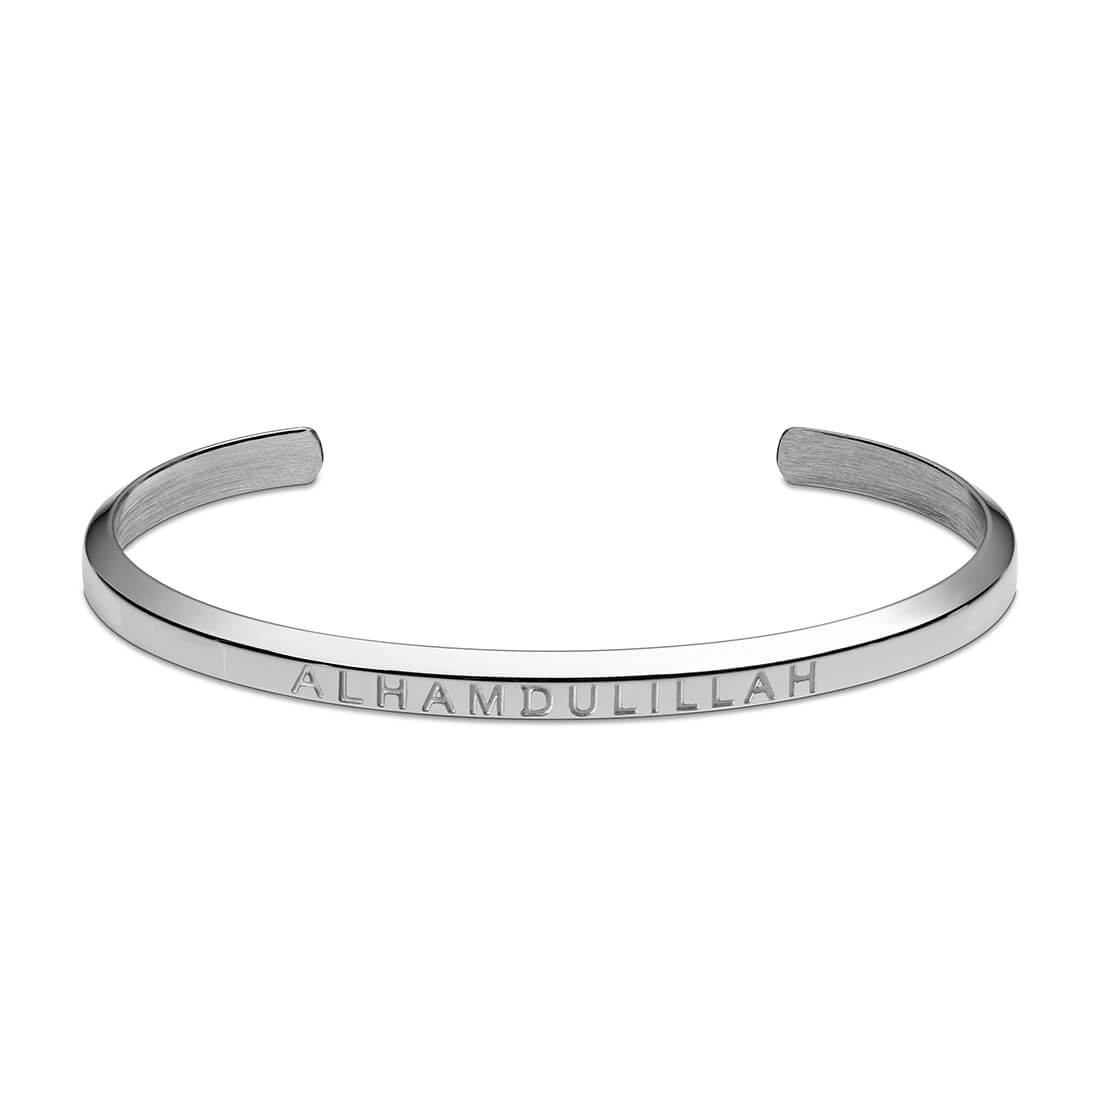 Alhamdulillah Cuff Bracelet in Silver by Crscnt Moon